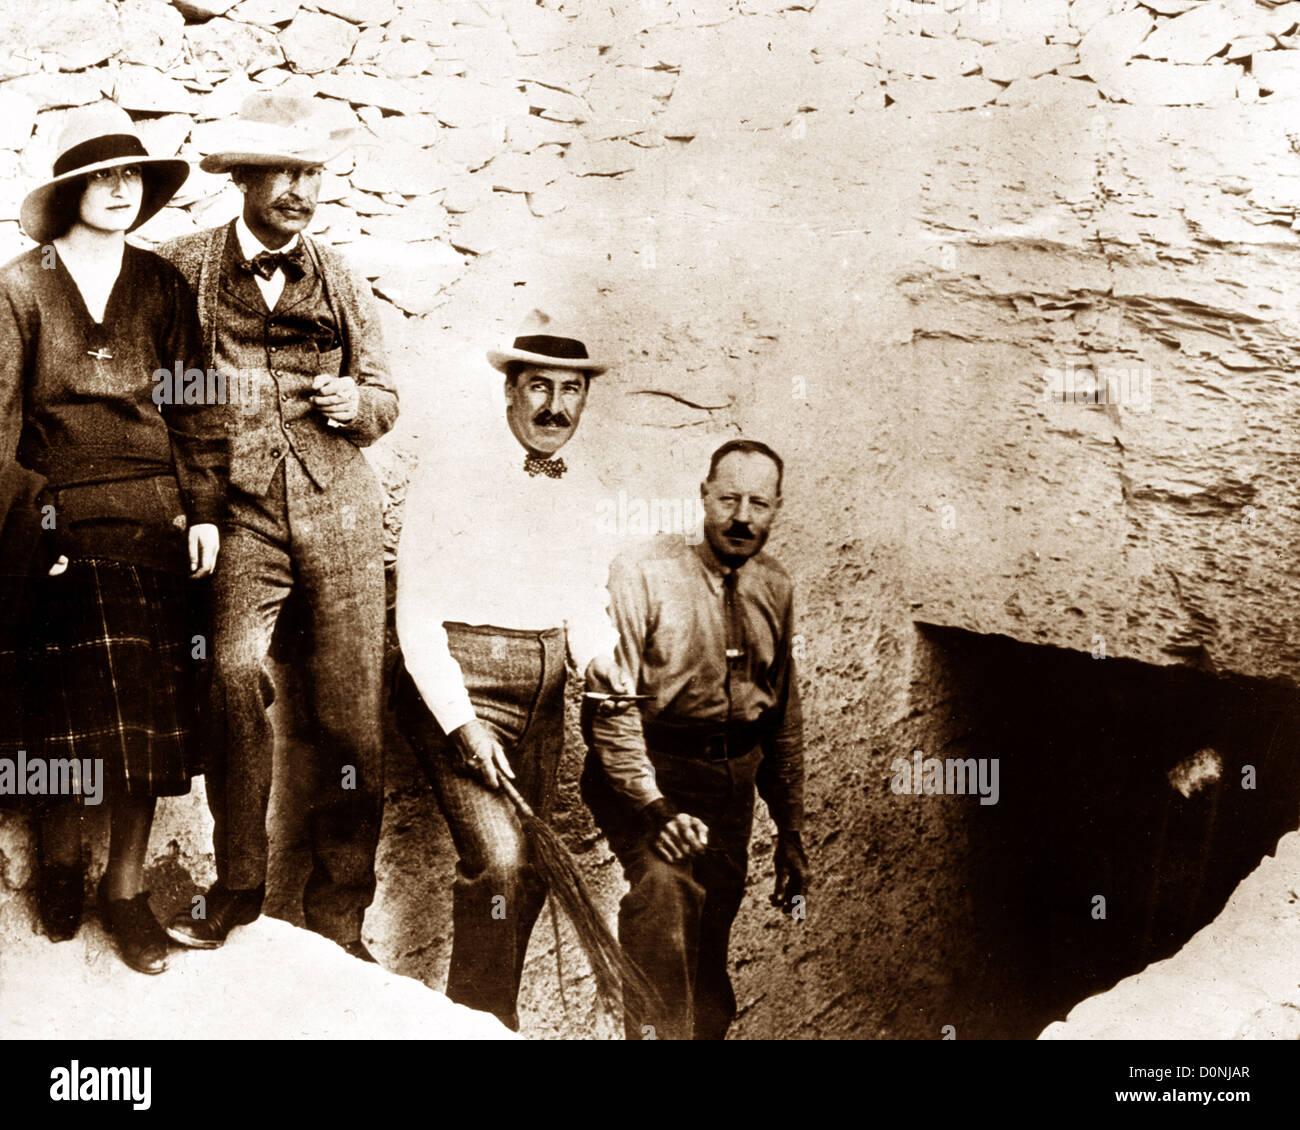 Howard Carter and Lord Carnarvon at the entrance to Tutankhamun Tomb - Stock Image